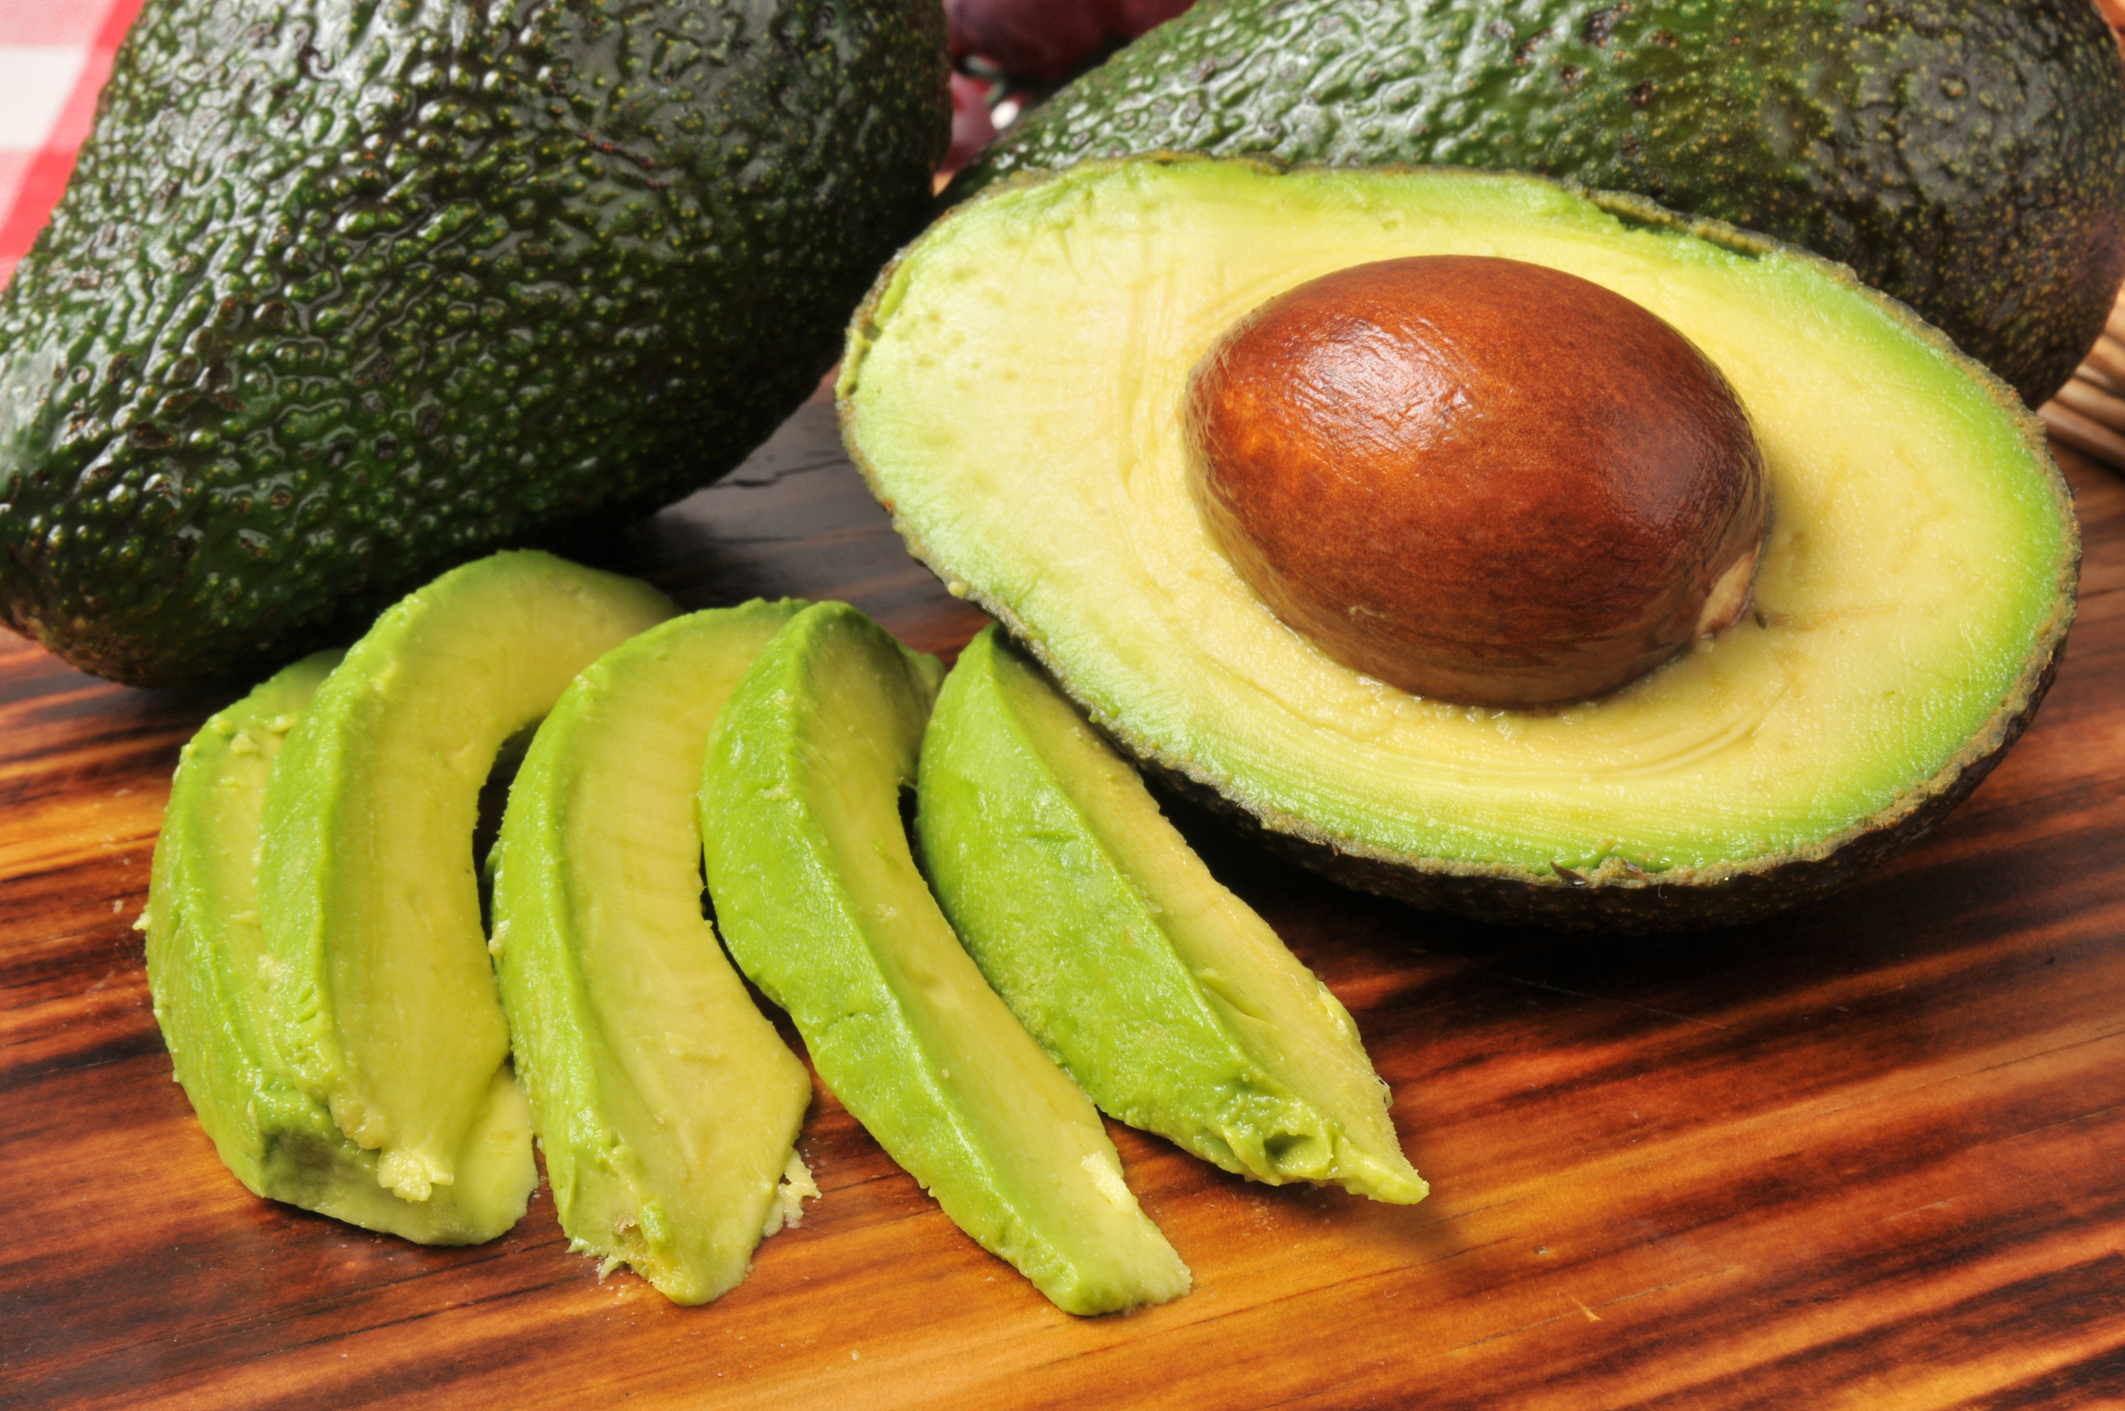 avocados are cheaper